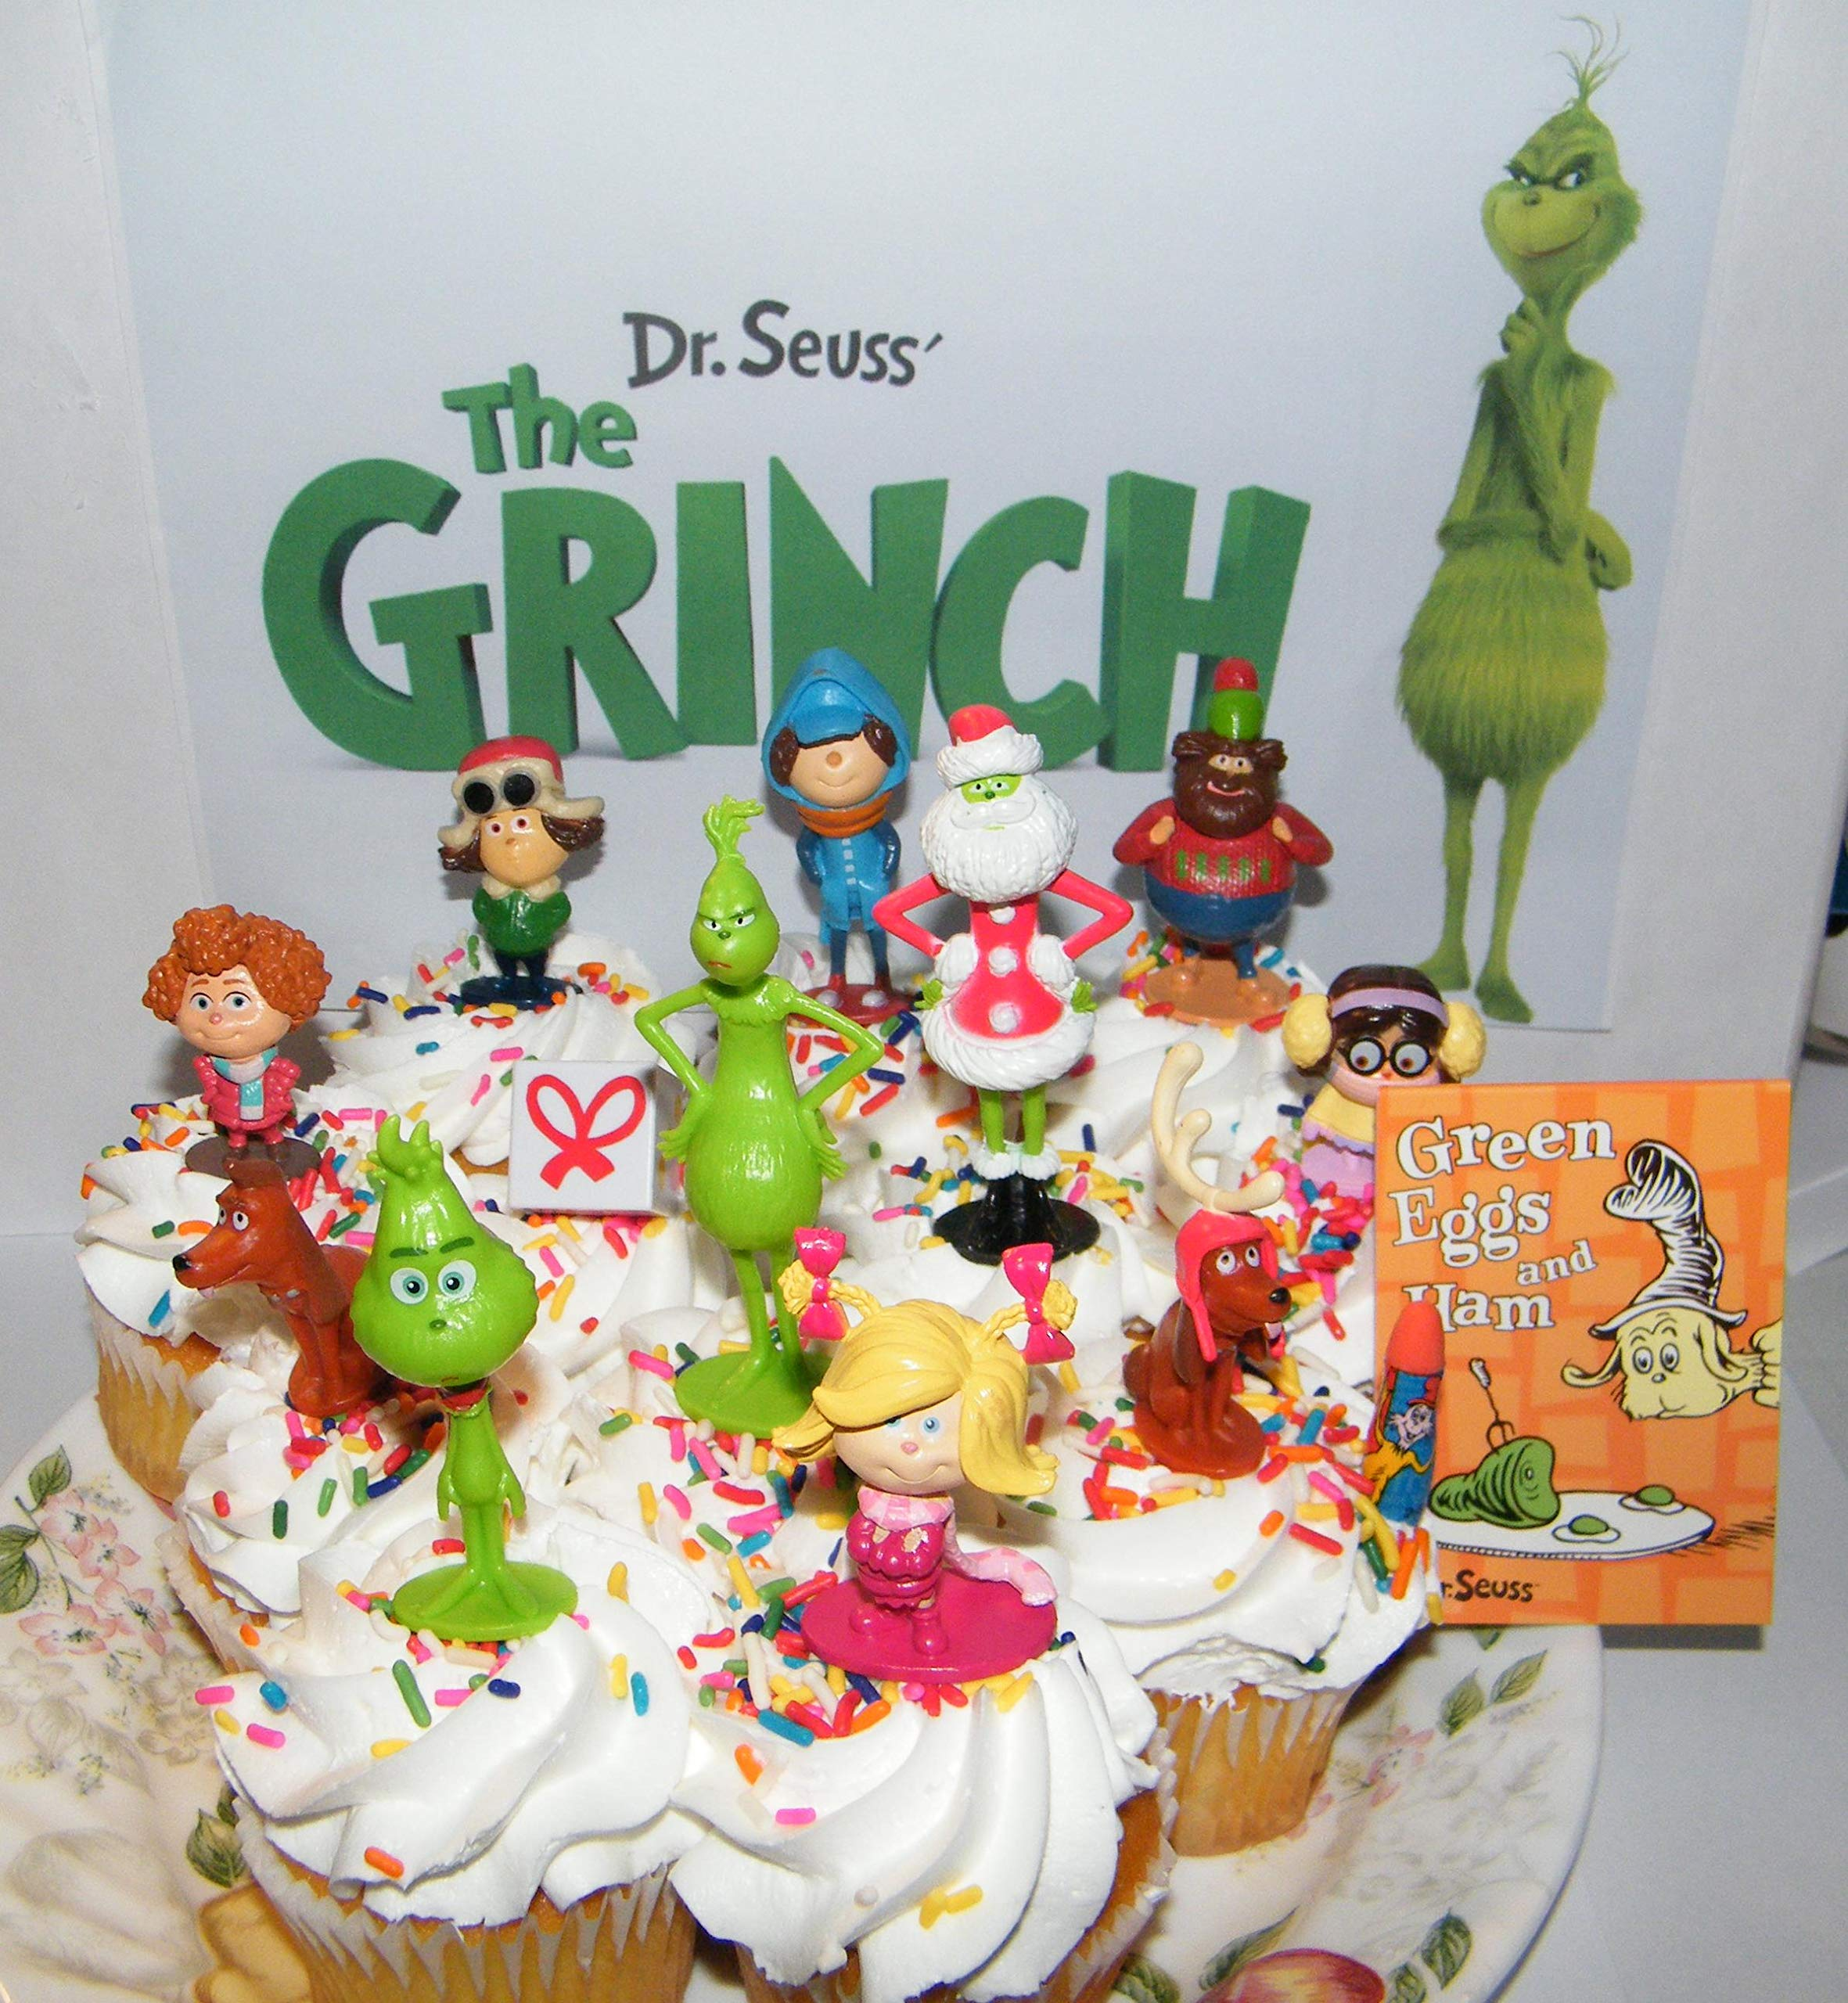 The Grinch Movie Deluxe Cake Toppers Cupcake Decorations Set of 14 with 12 Figures Featuring Classic and New Characters and A Special Notebook and Eraser Gift Set! by Party Decor